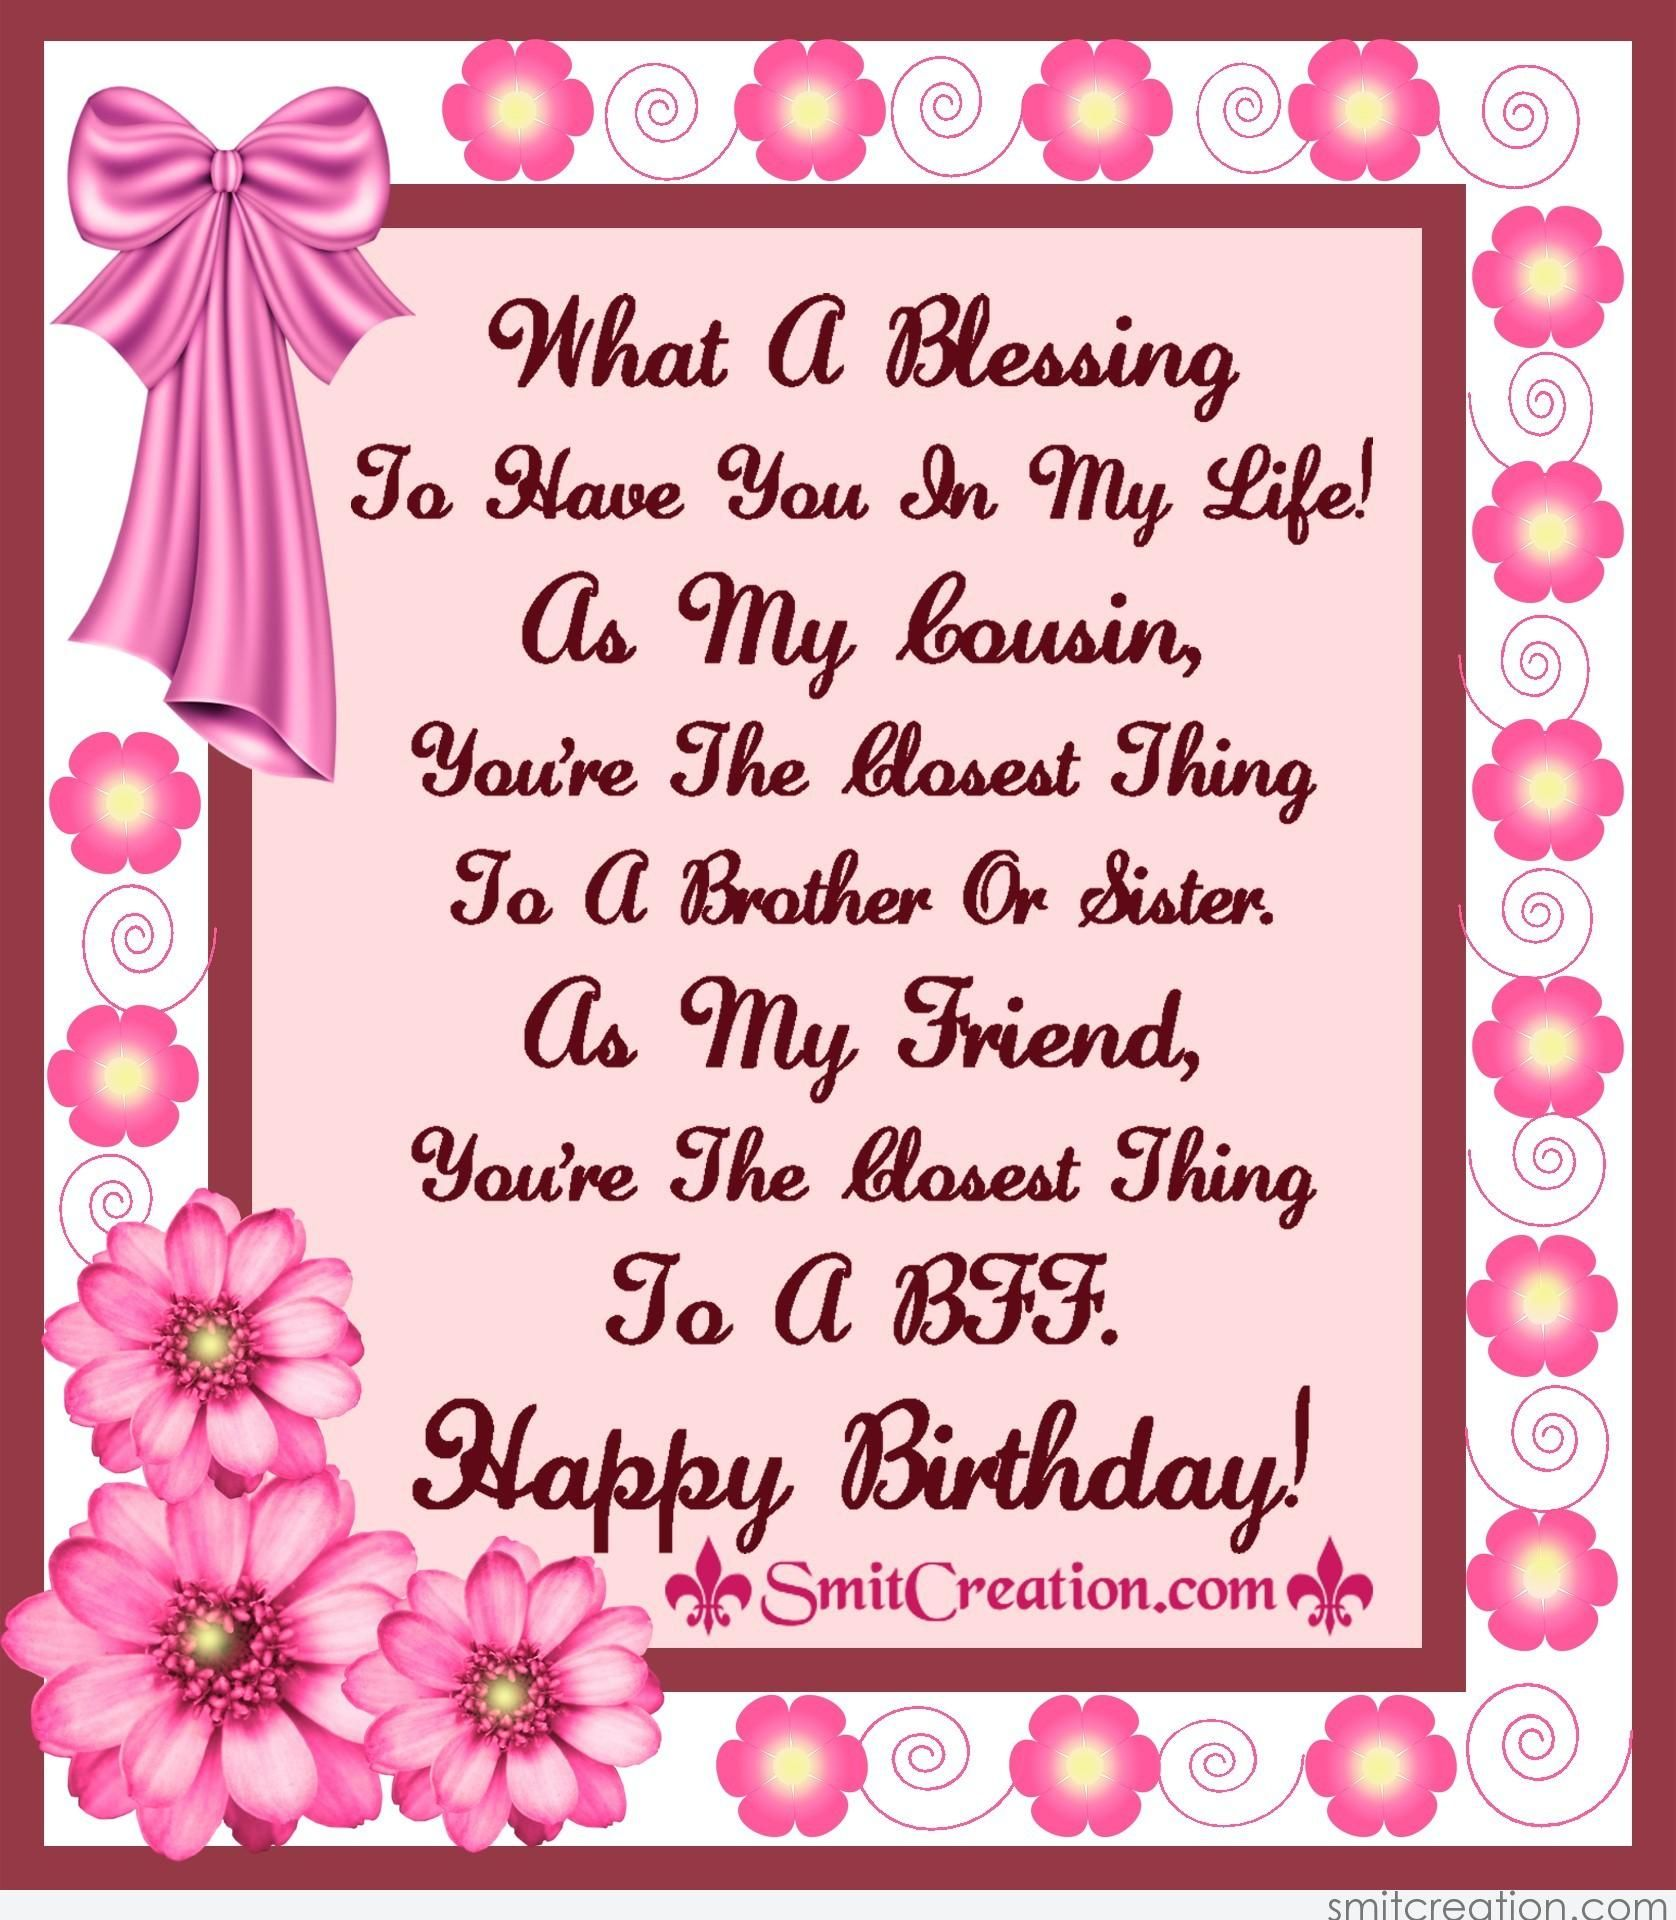 birthday wishes for cousin pictures and graphics smitcreation